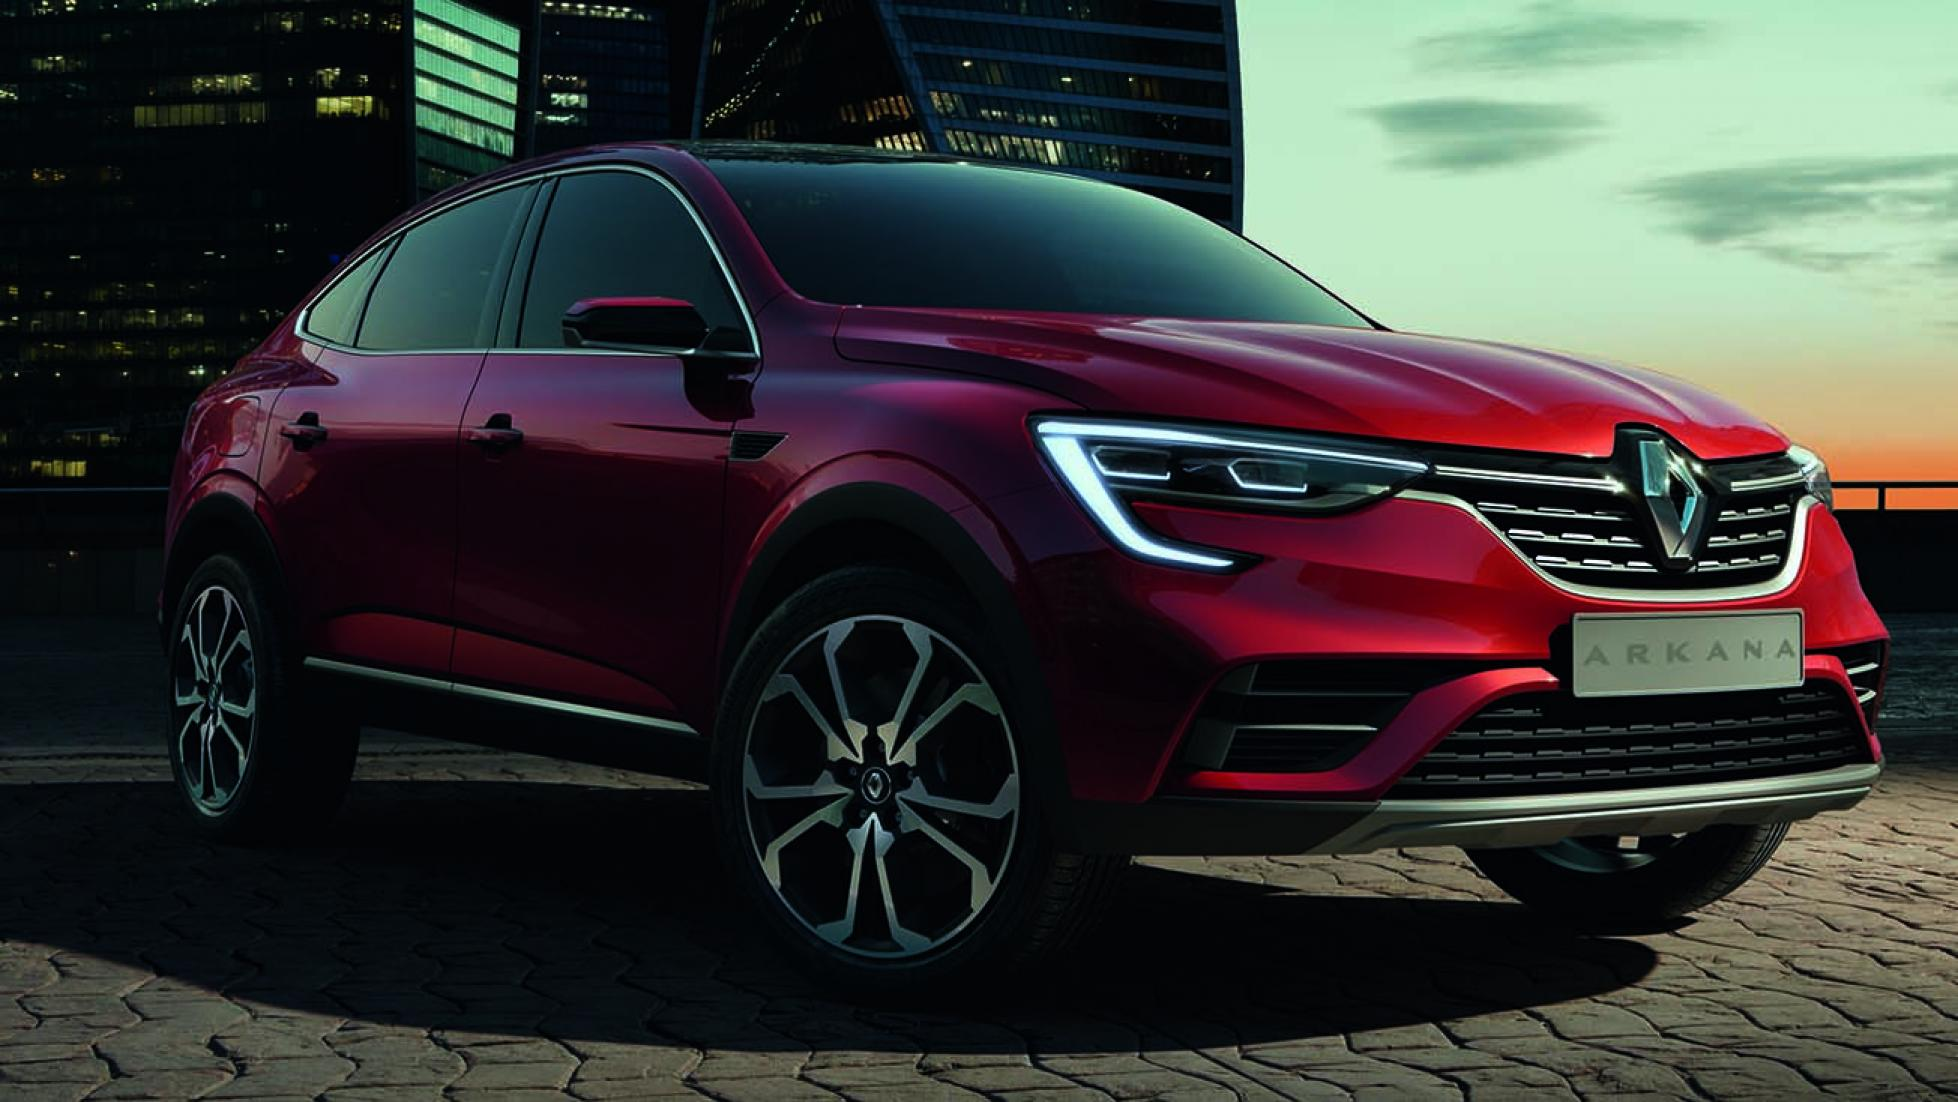 Renault Arkana Study Previews Poor Man's X4, Is Not For Europe